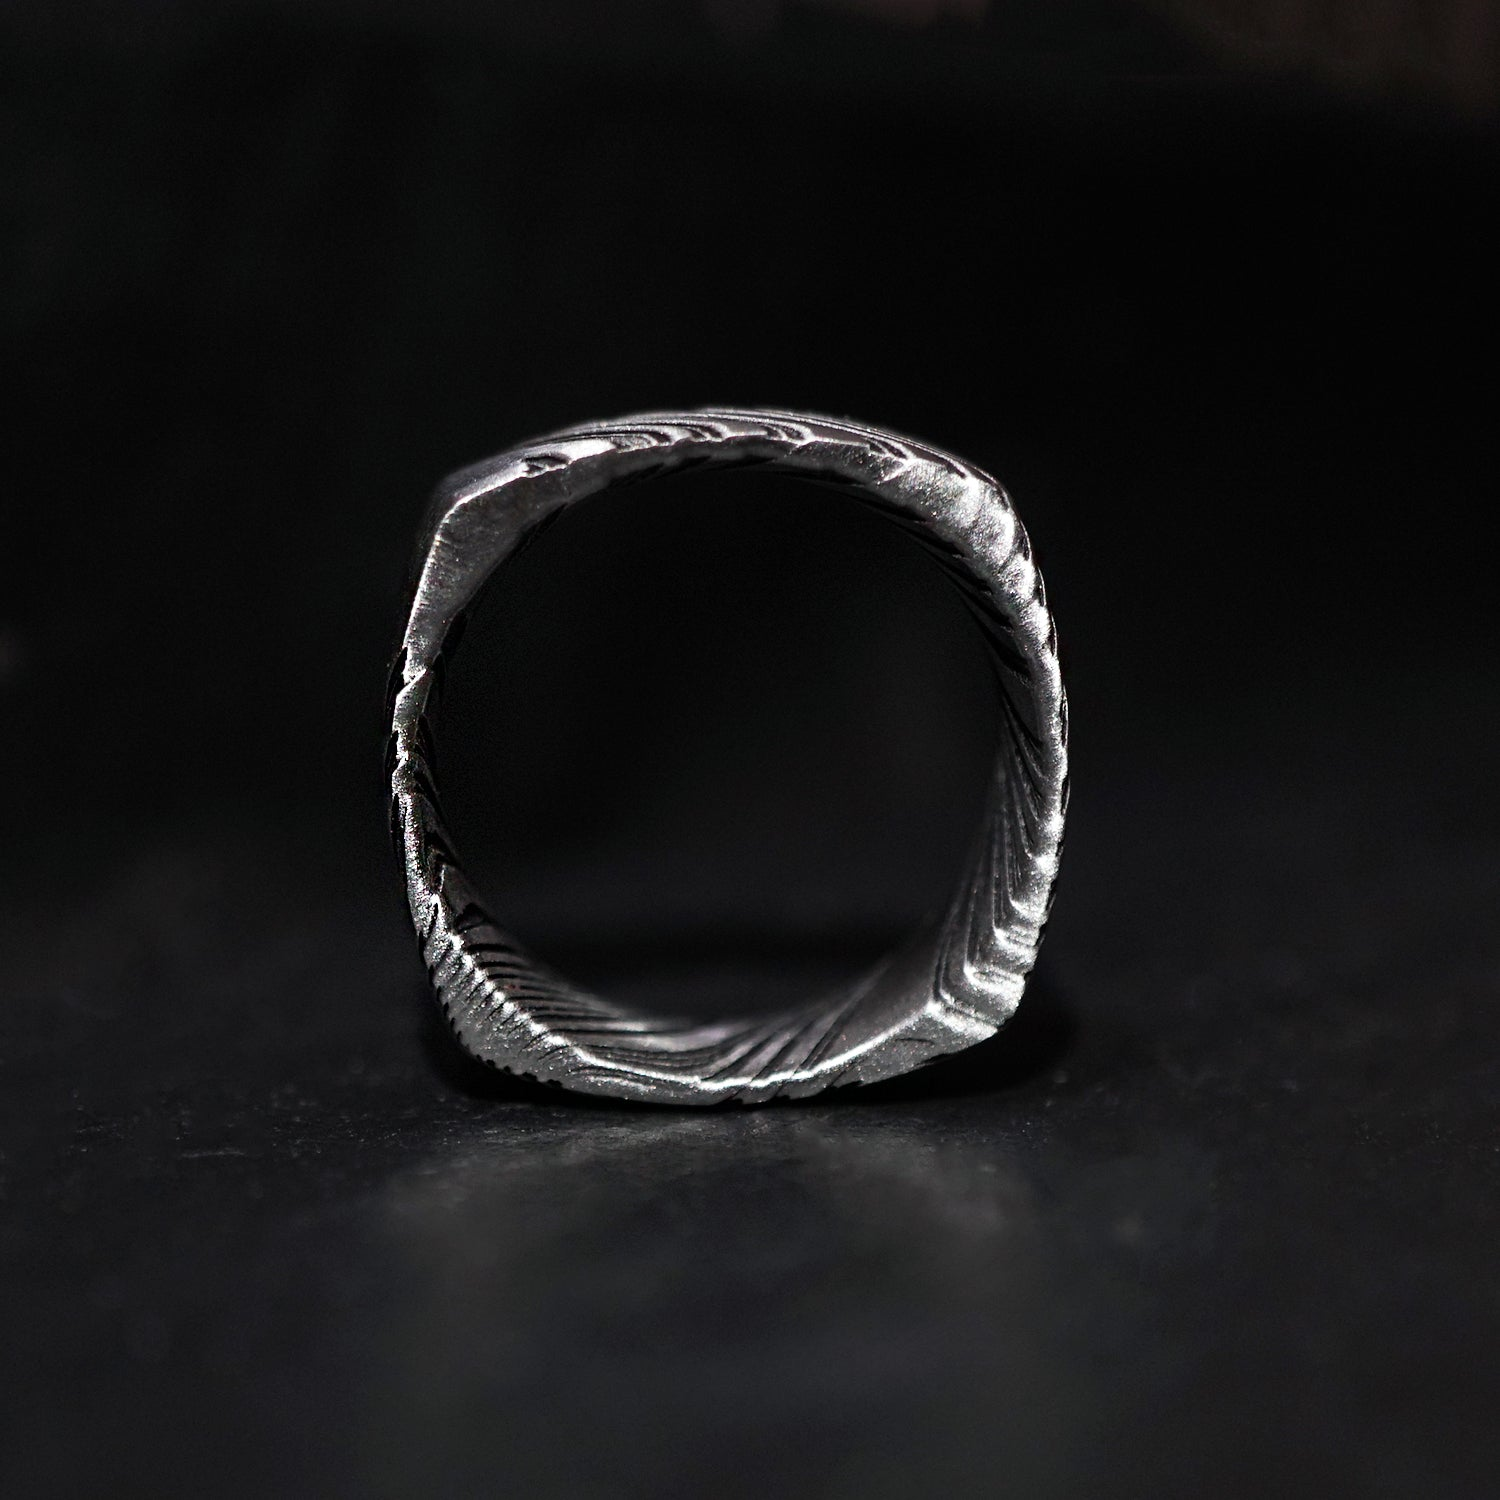 Damascus Steel Ring